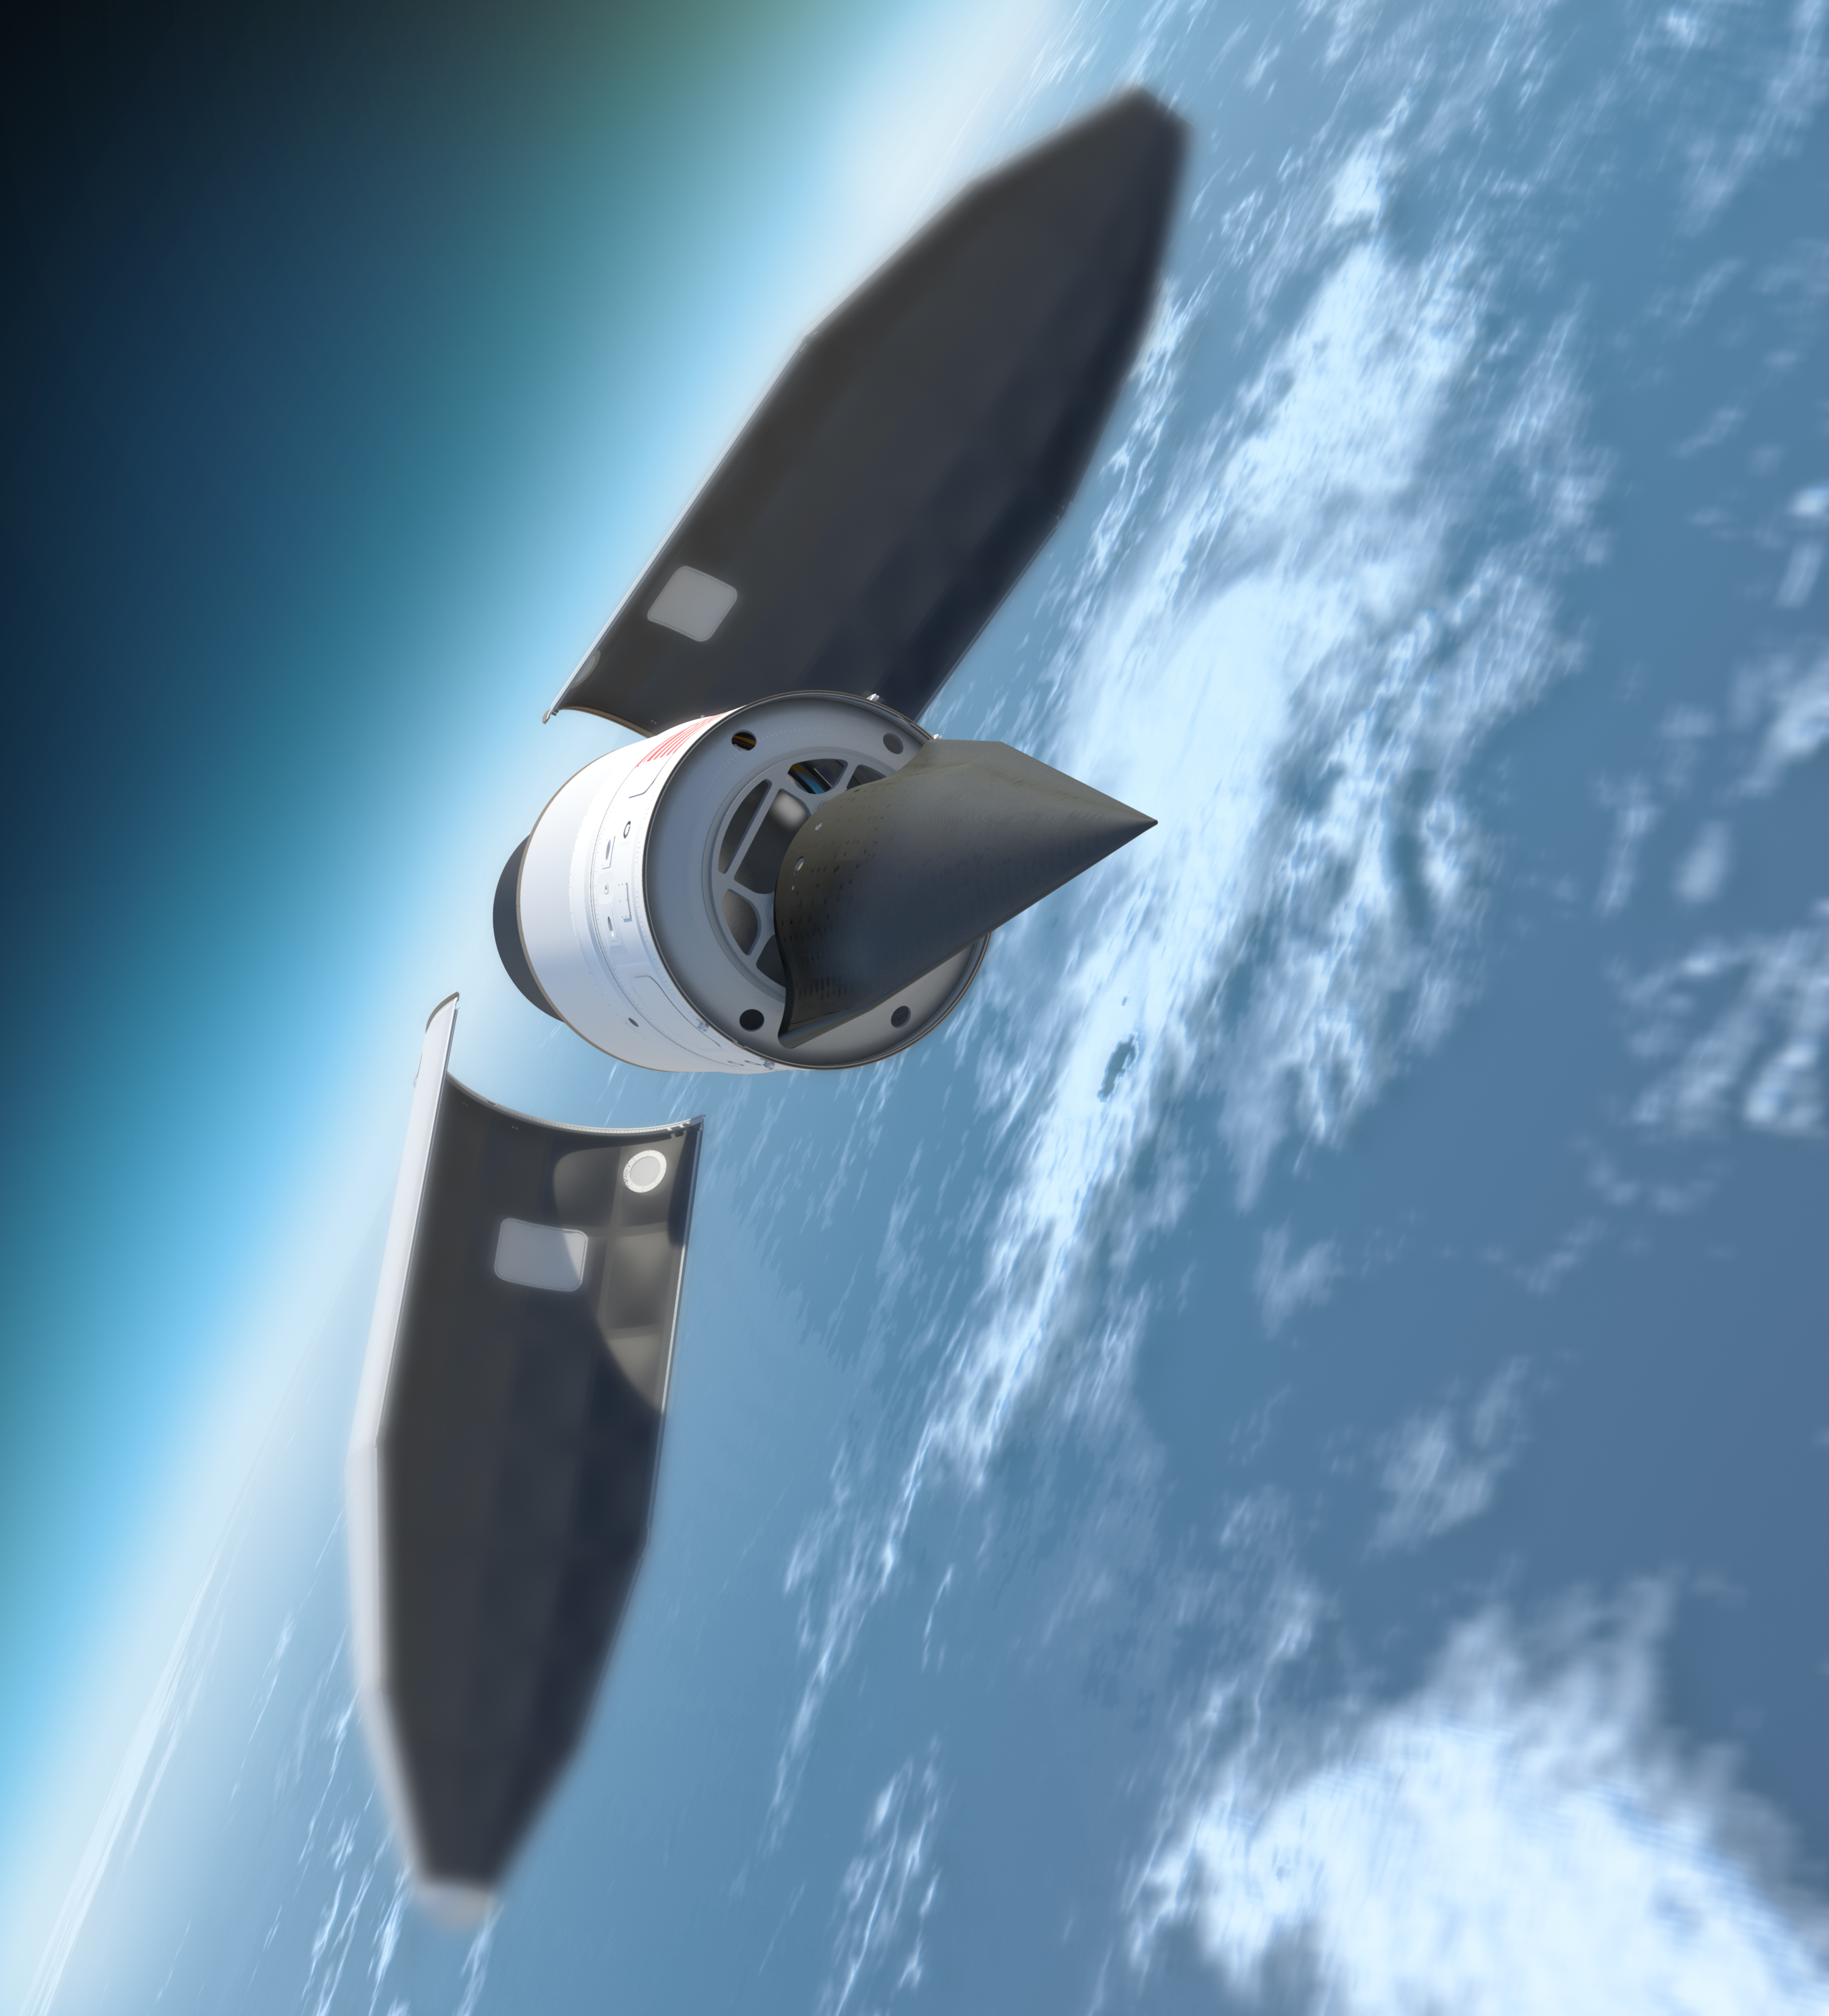 HTV-2 with rocket